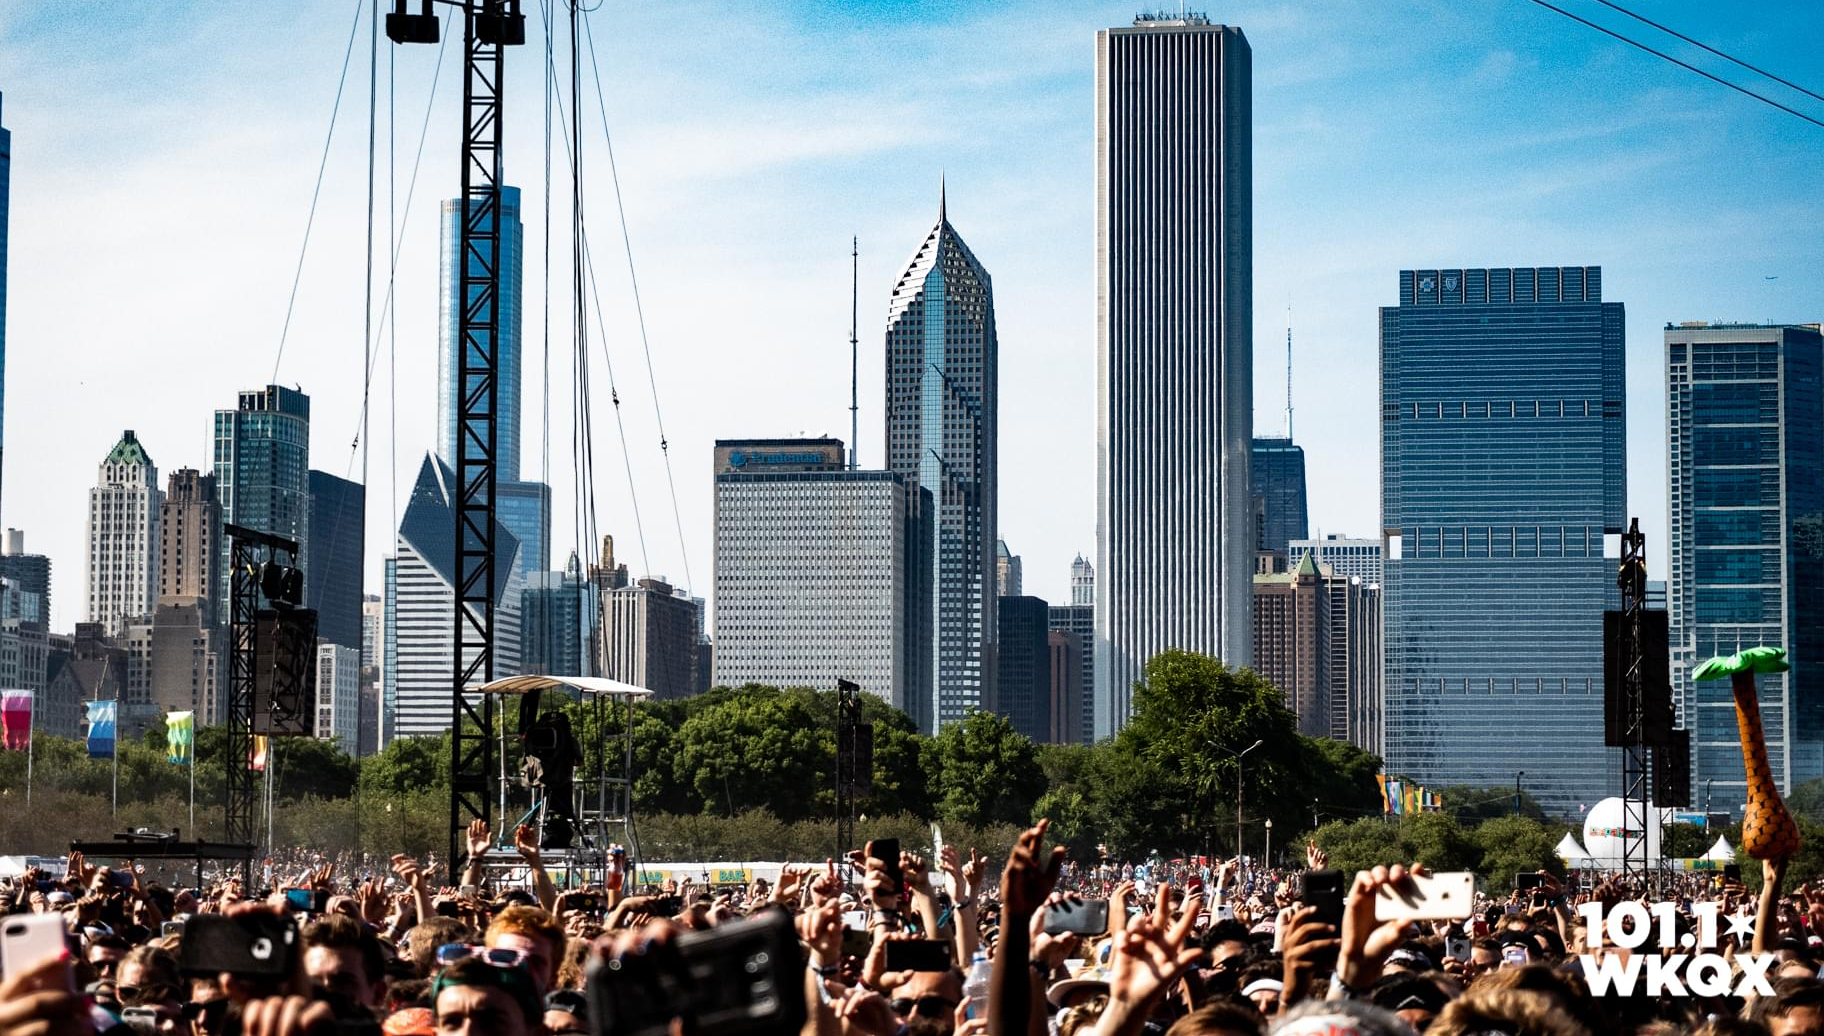 Surprise!  Here's your Lollapalooza schedule!